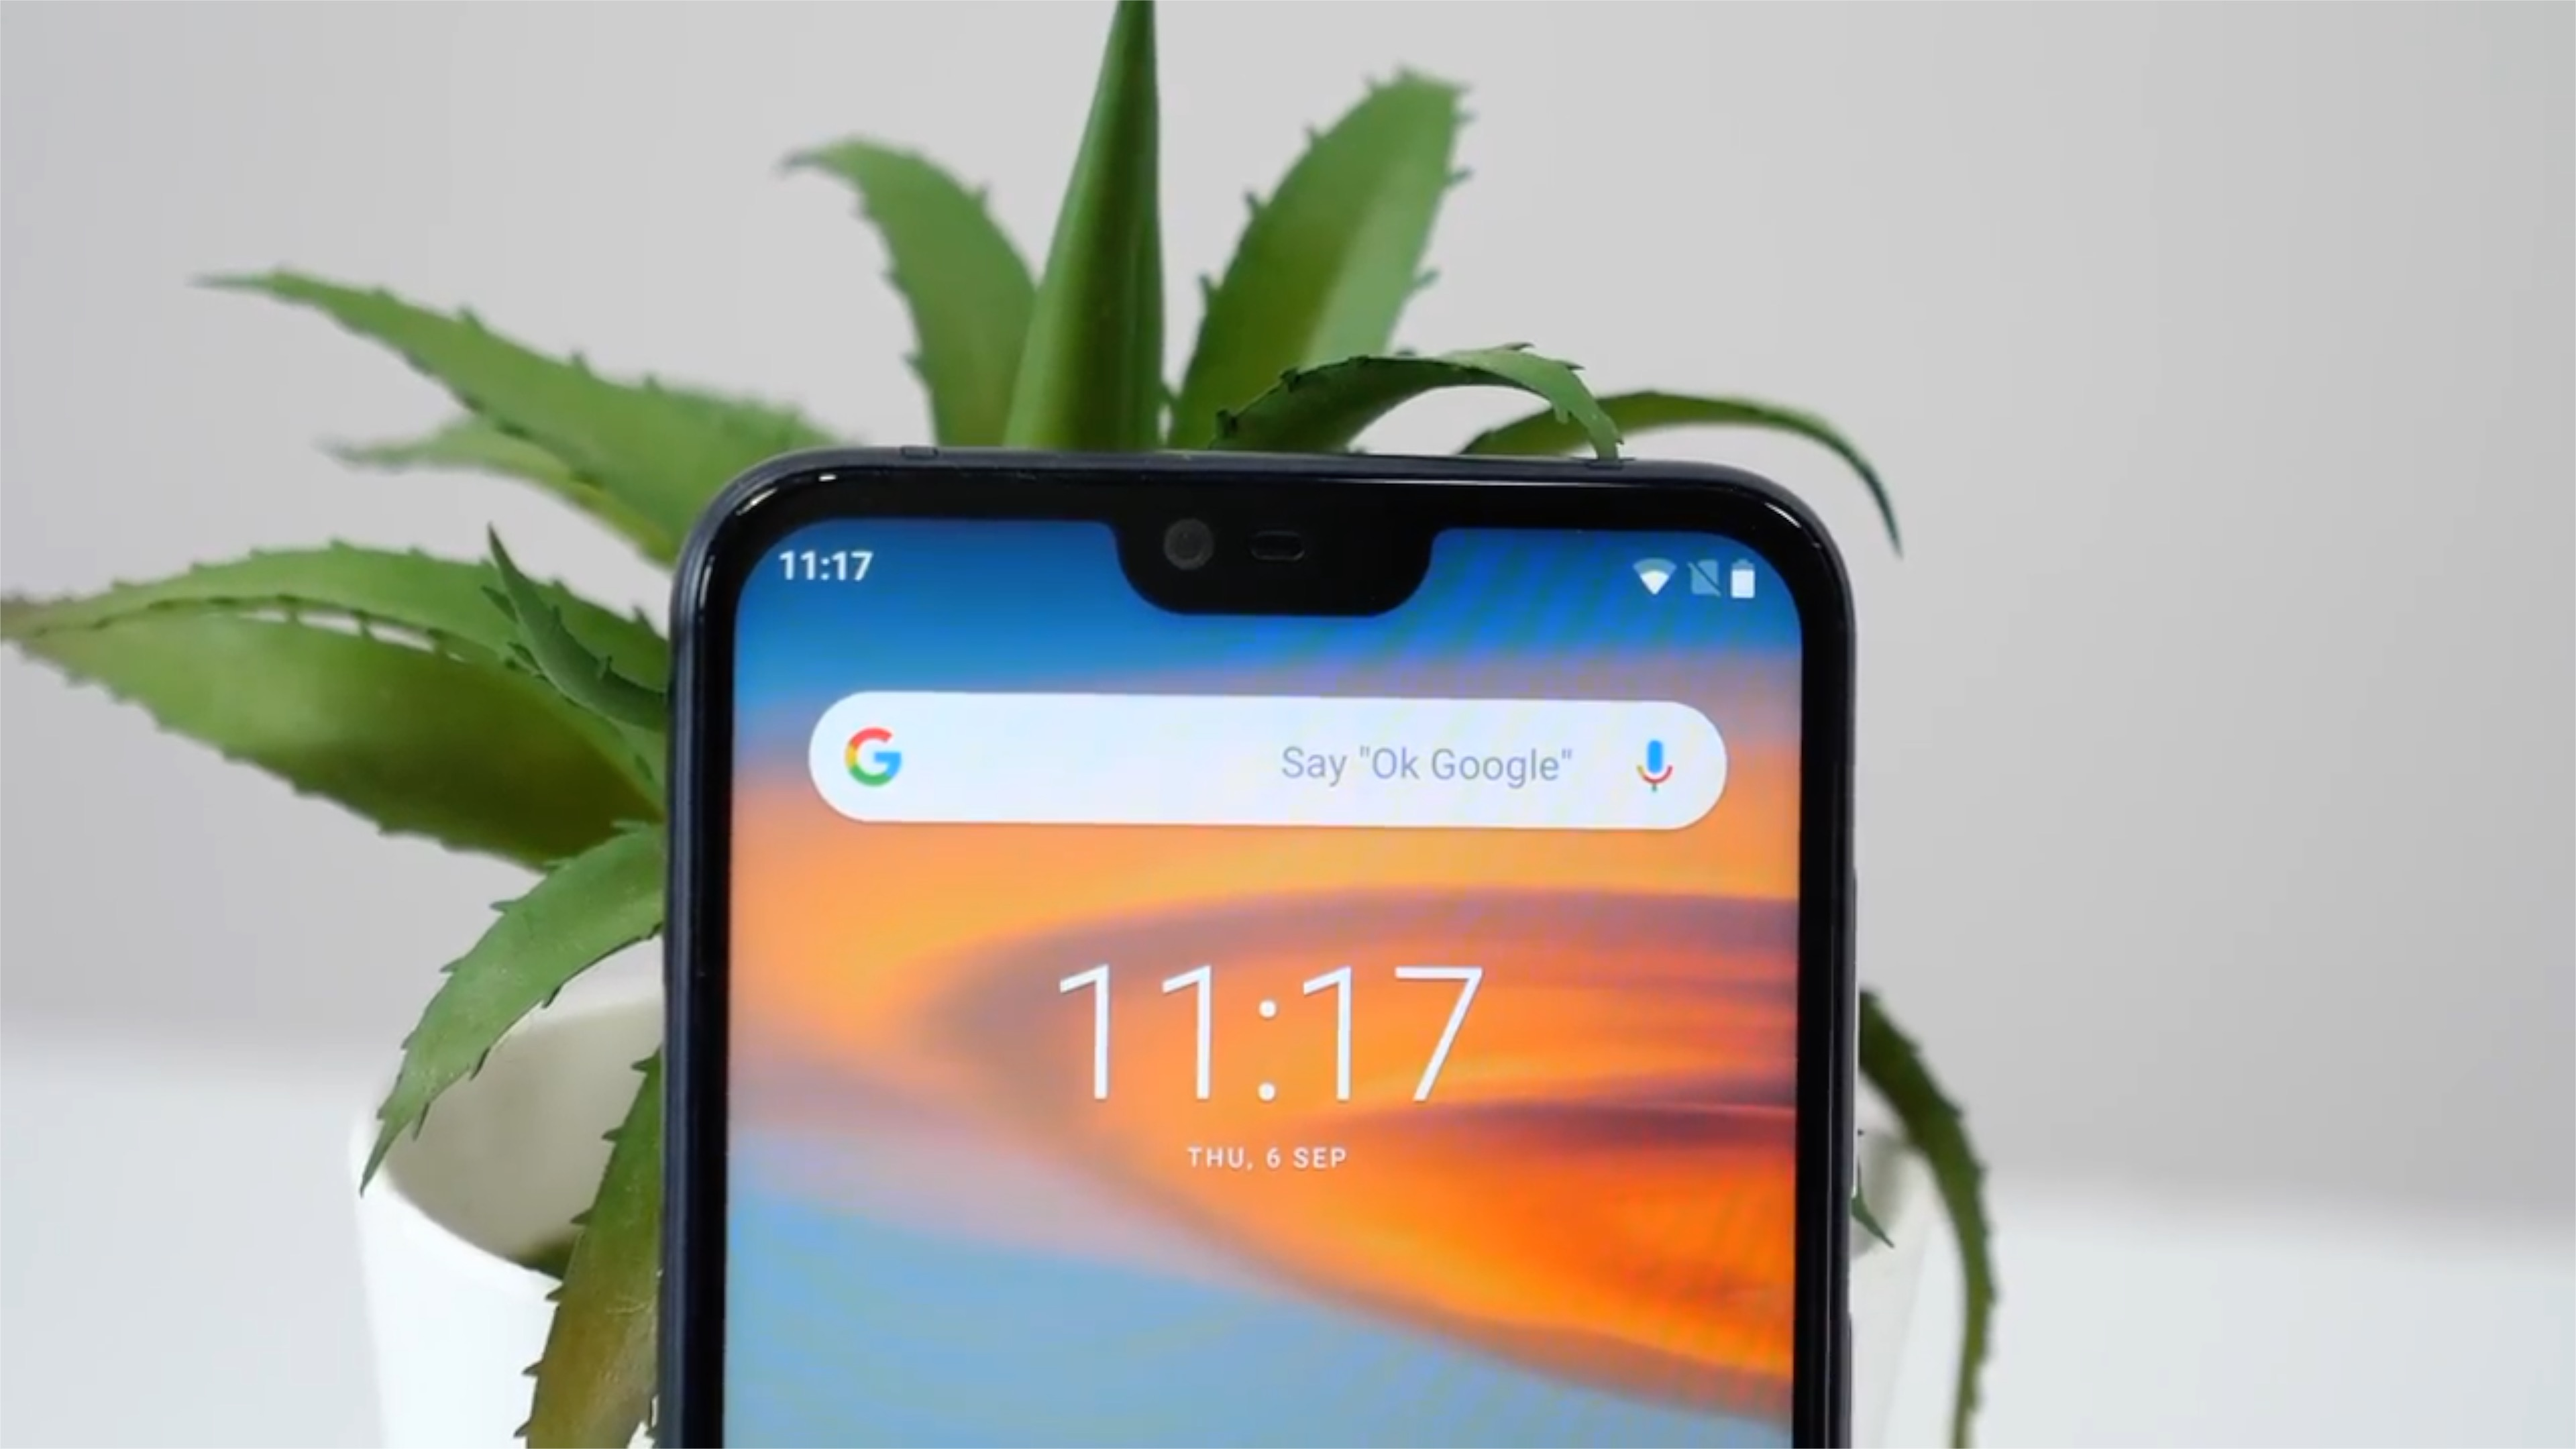 Nokia 6.1 Plus Review Notch Display Nokia 6.1 Plus